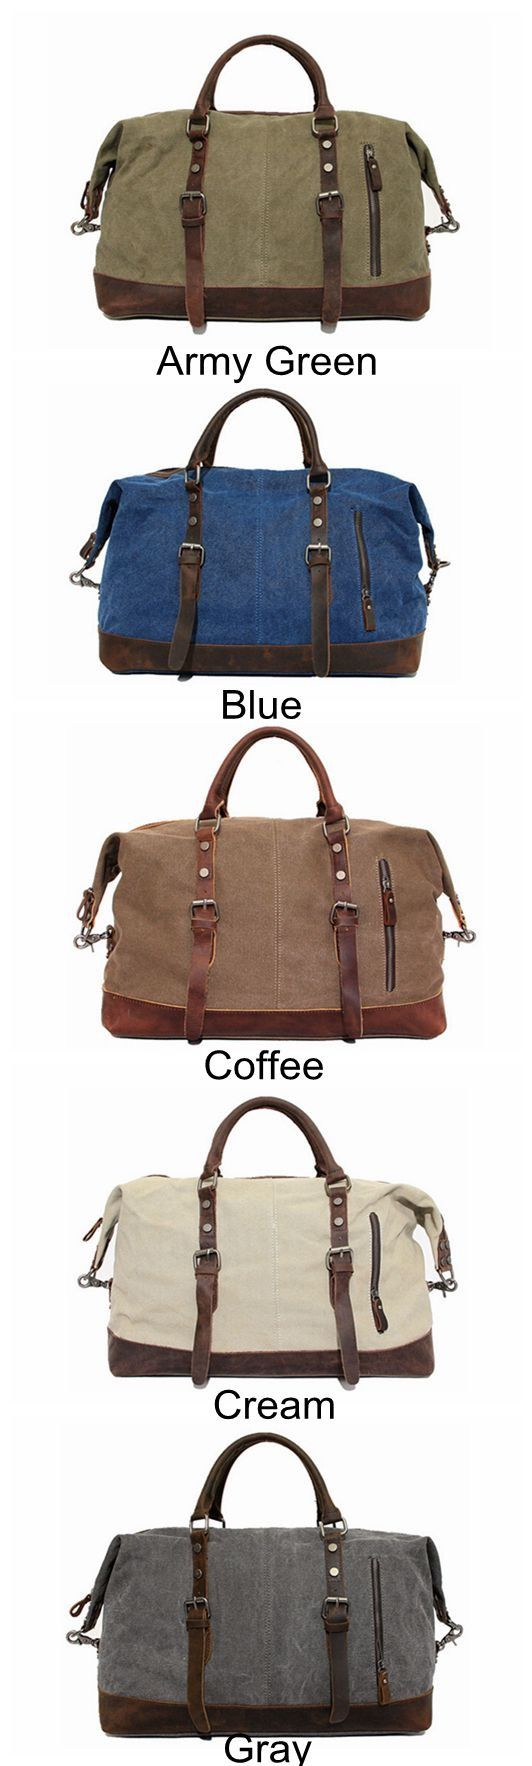 Image of Handmade Waxed Canvas Leather Travel Bag Dufulle Bag Holdall Luggage Weekender Bag 12031